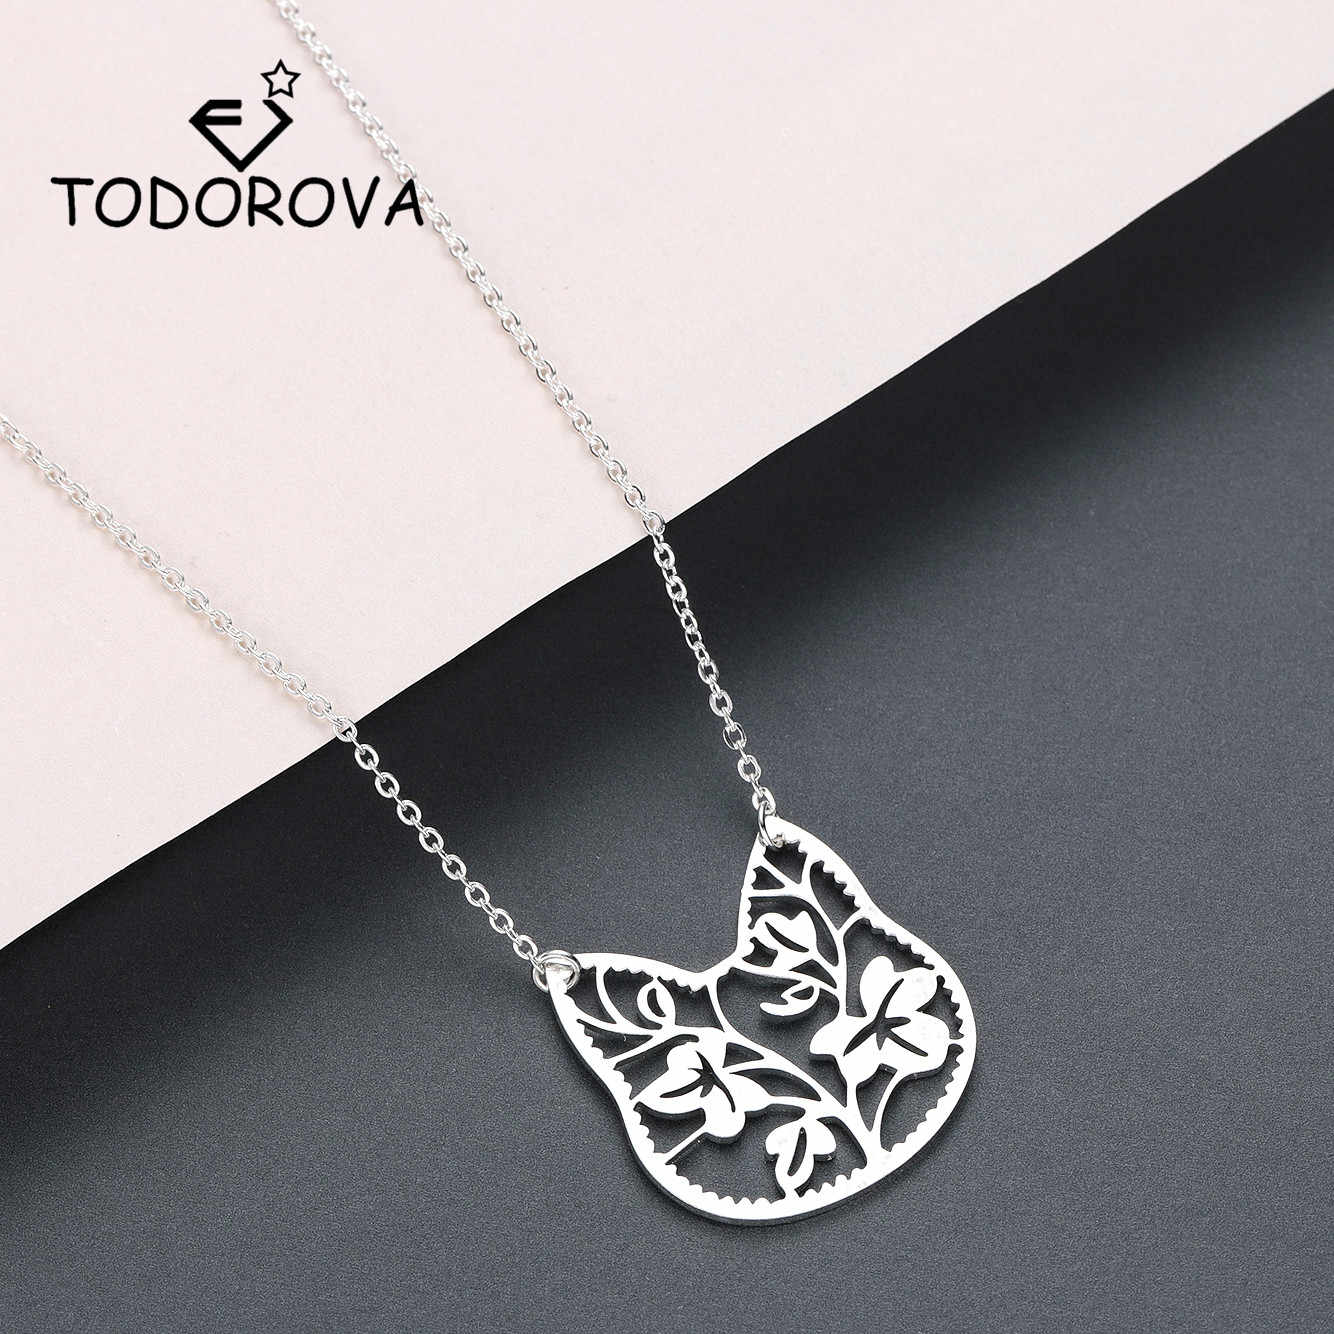 Todorova Cute Animal Jewelry Stainless Steel Cat Face Necklace for Pets Lovers collares Necklaces & Pendants Gifts for Girls